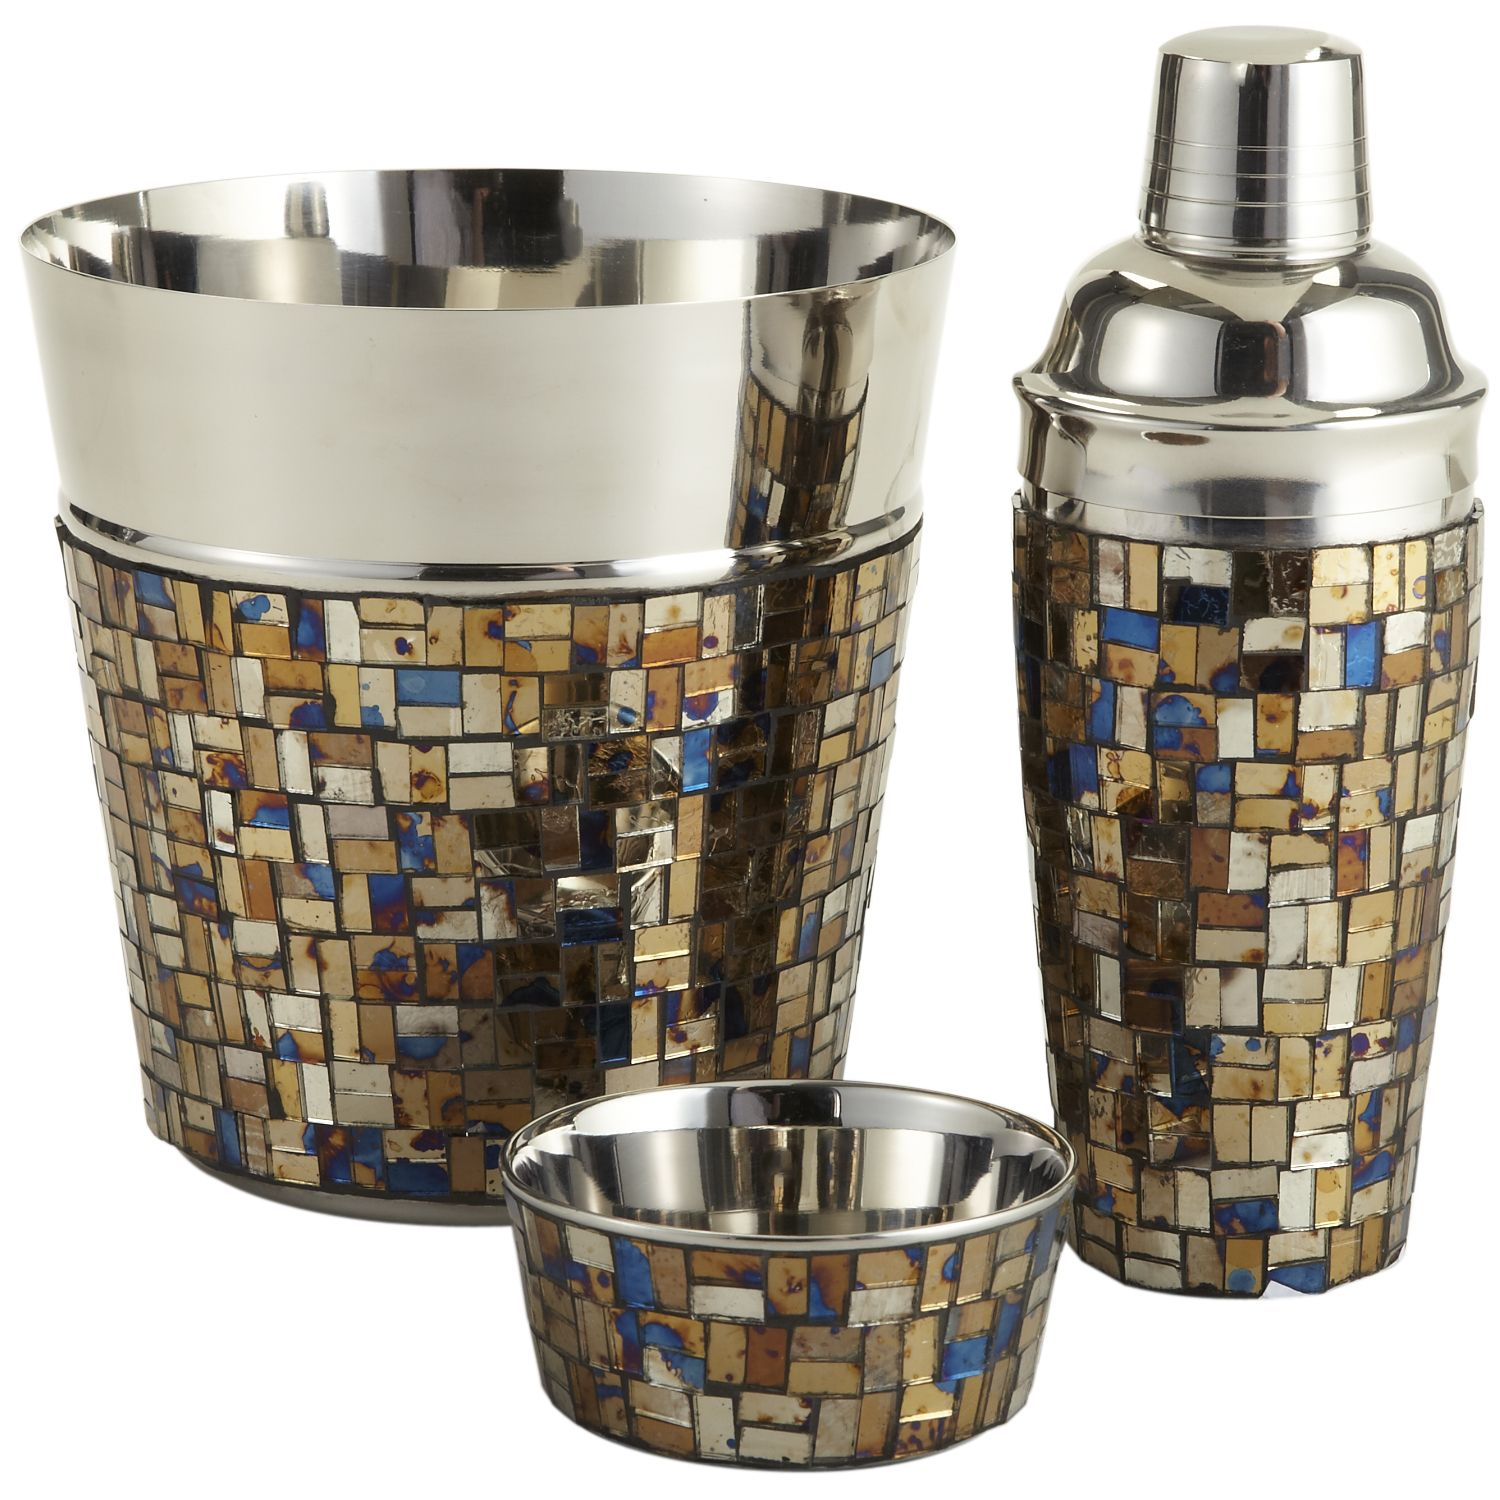 Pier One Bakers Rack: Pier 1 Mosaic Barware Is Topped With Stainless Steel